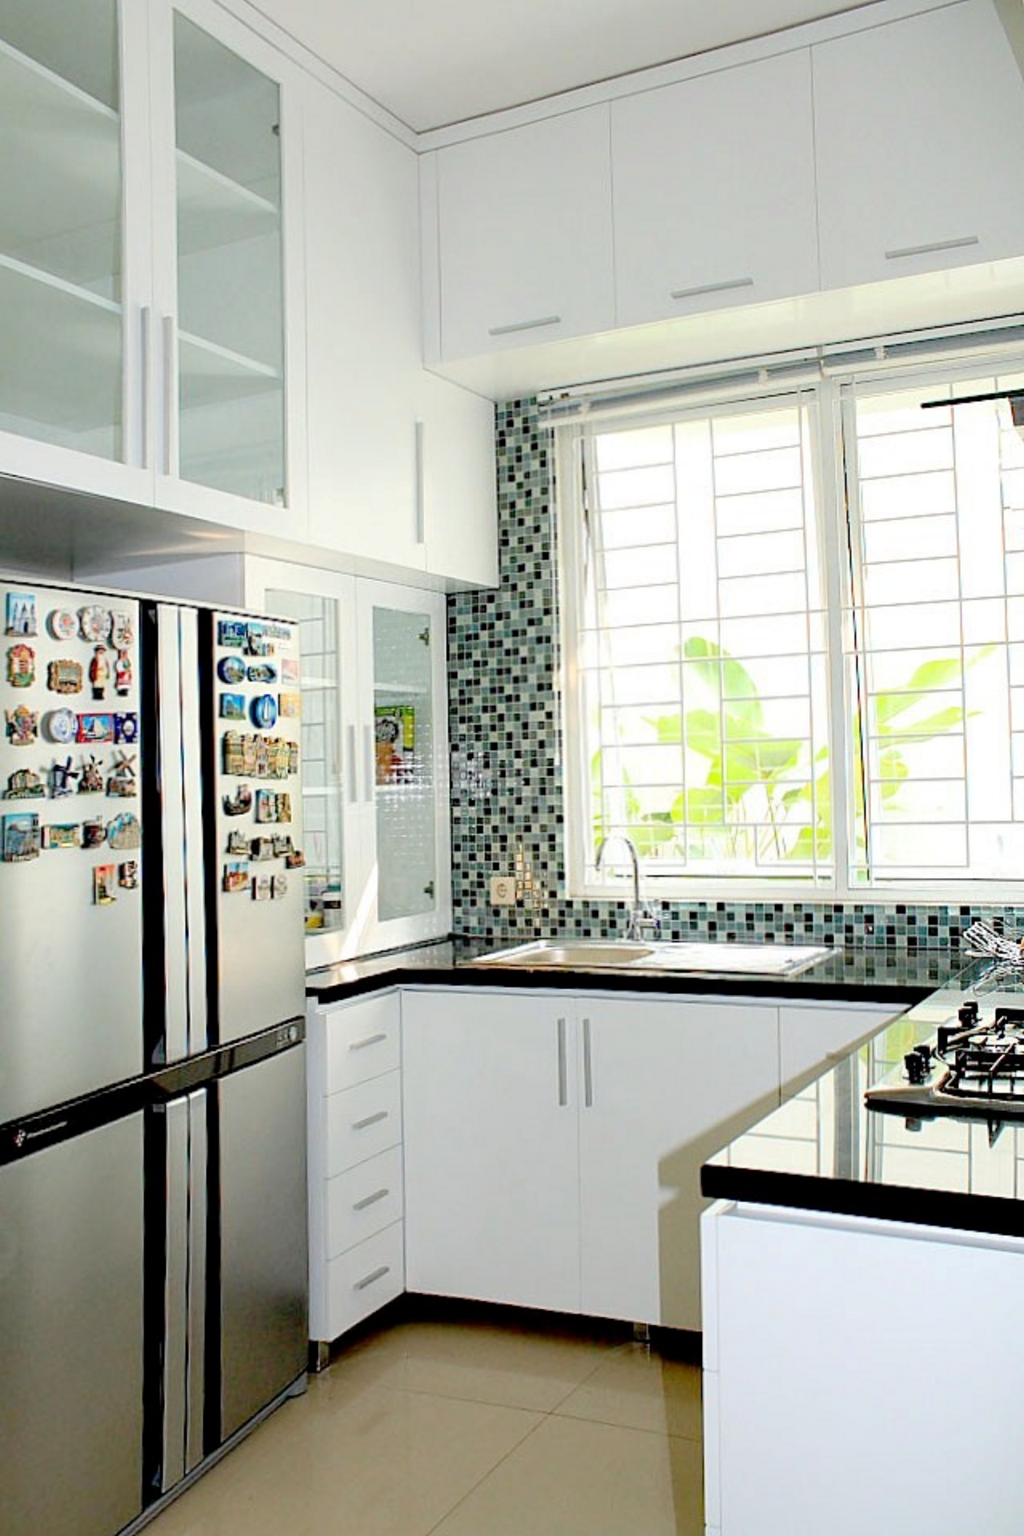 kitchen set dapur basah 4